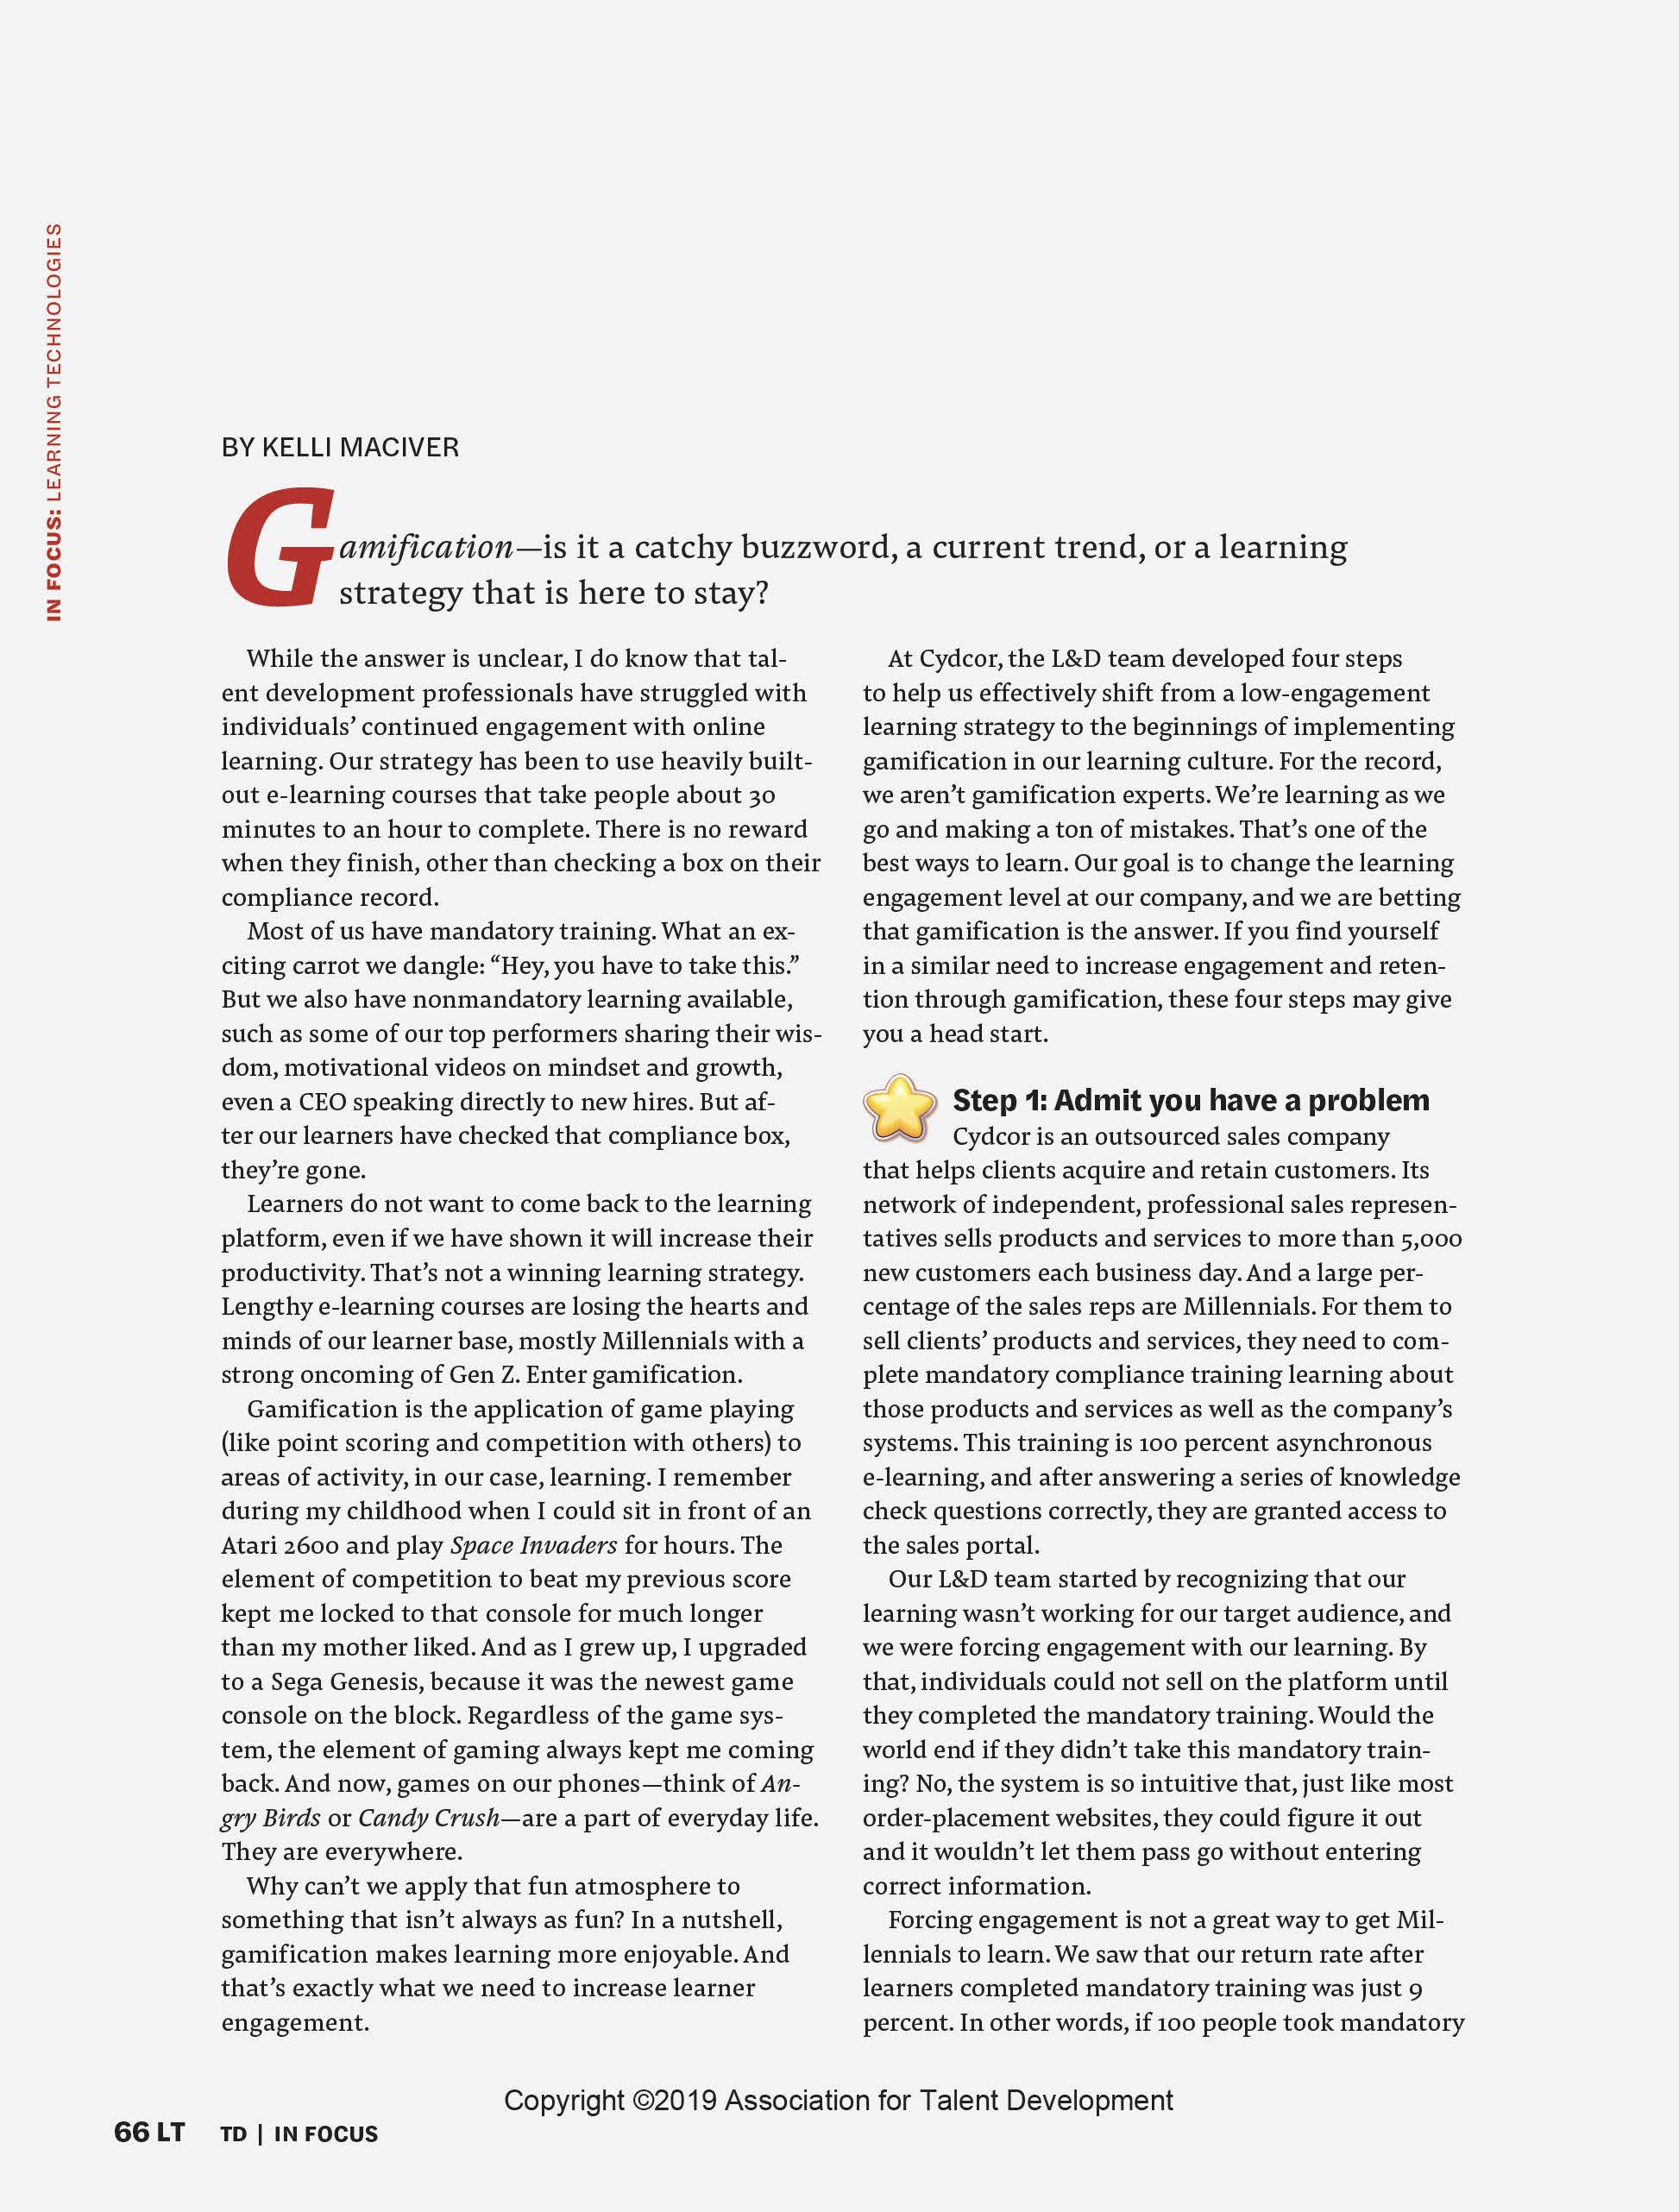 How Gamification Boosts Employee Engagement in Corporate Training Page 2